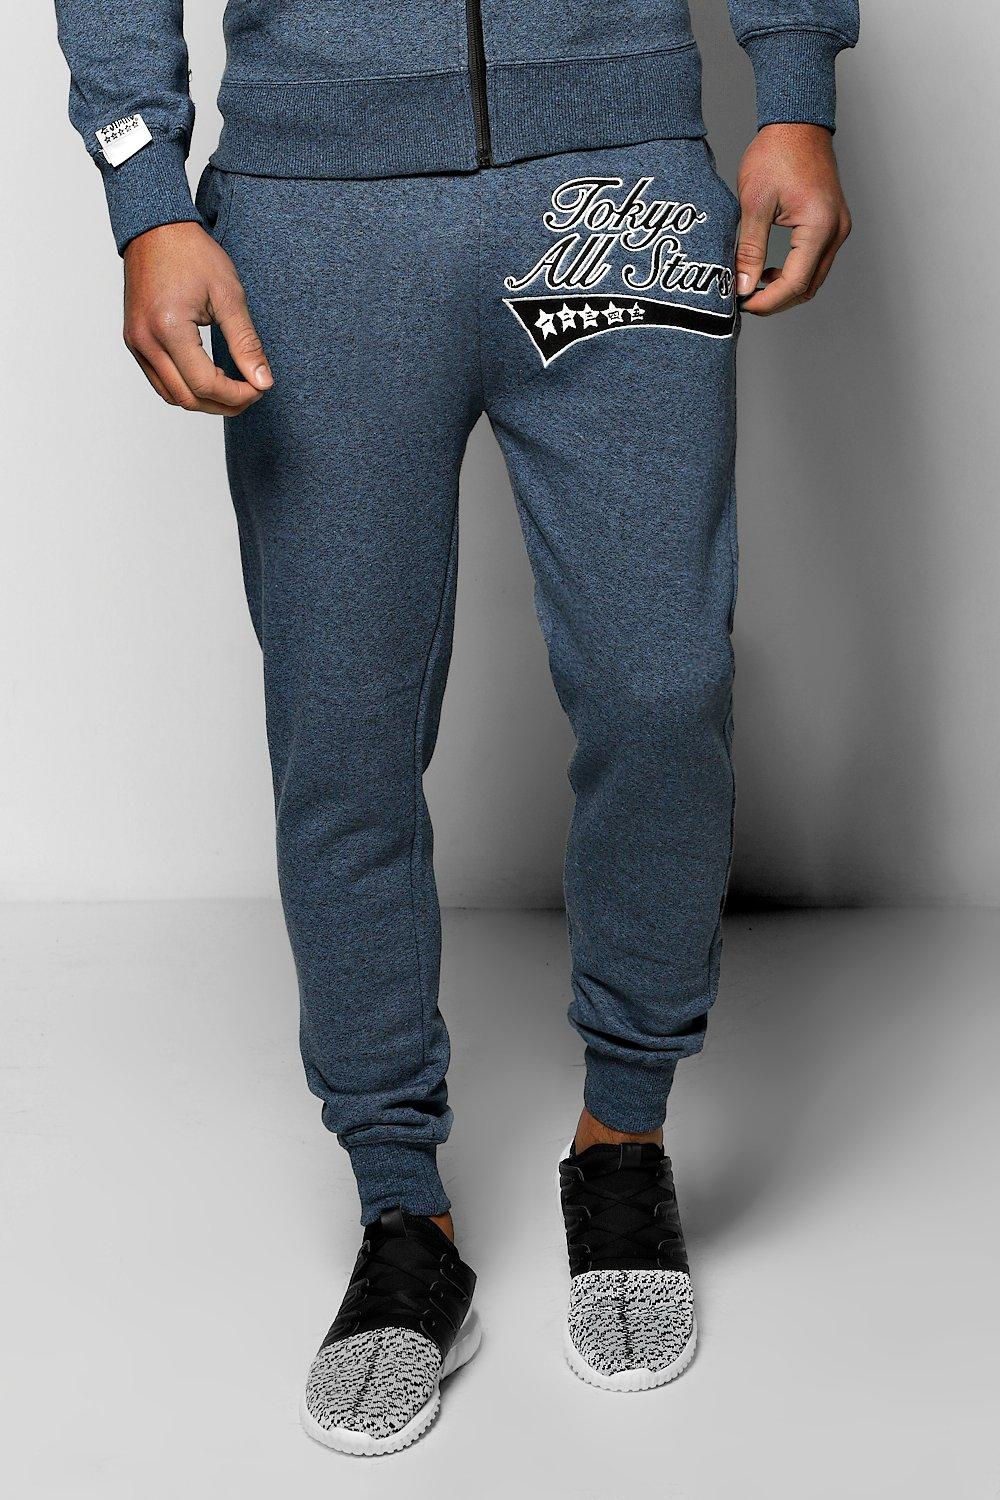 Tokyo All Stars Salt and Pepper Joggers